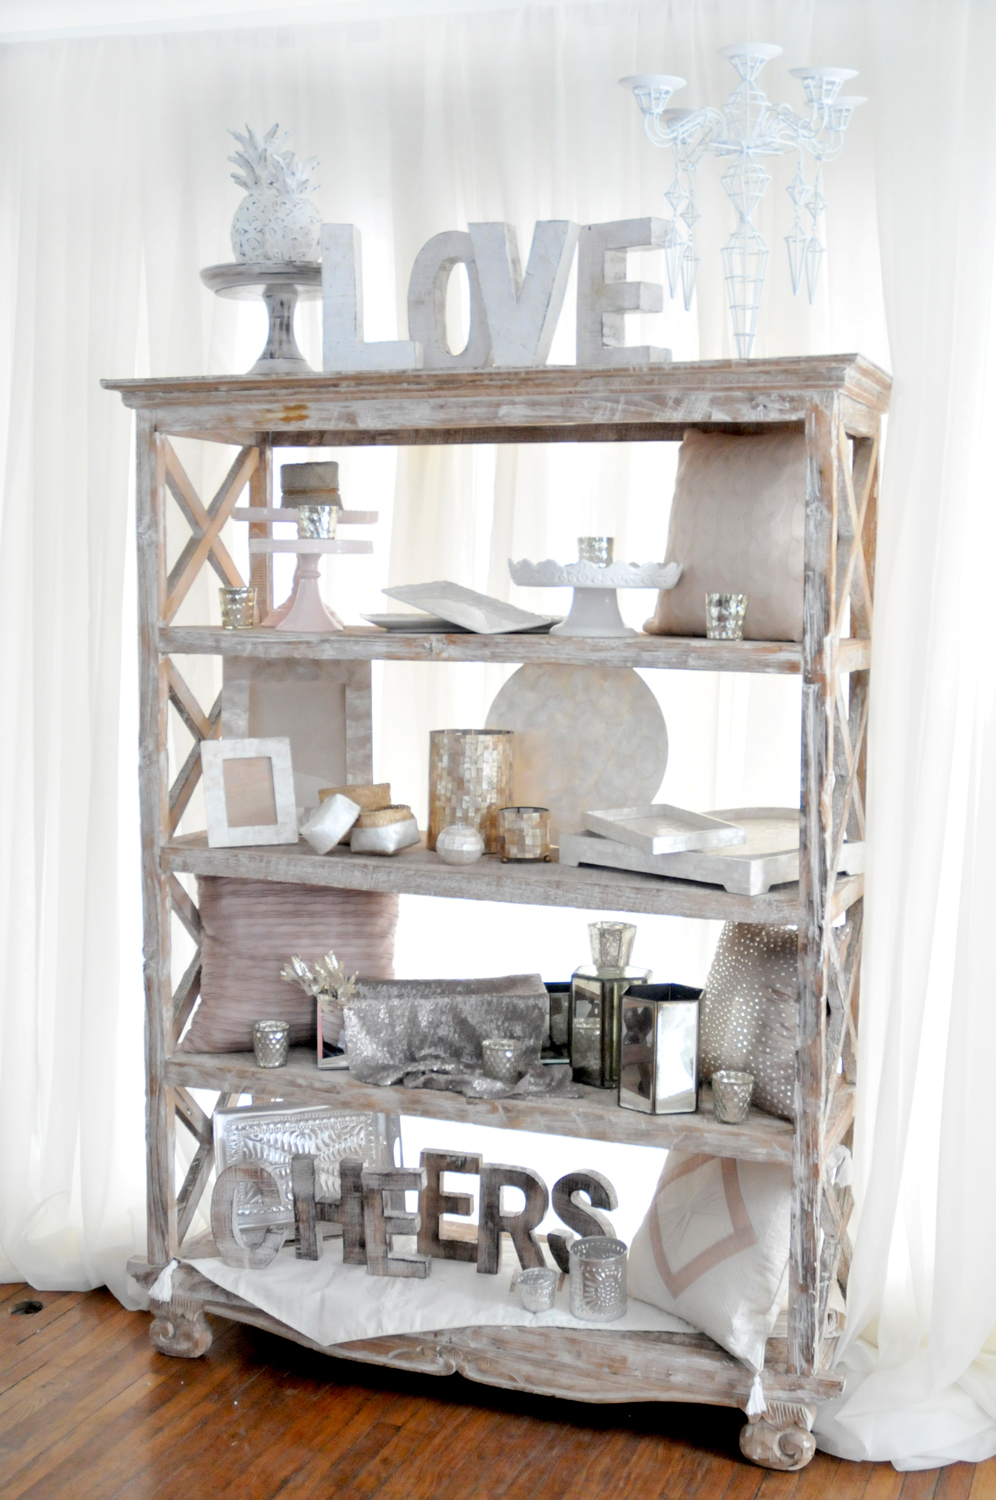 The Coast Bookcase with a distressed white-wash finish is perfect as a bar back to be filled with glassware and liquor. It can also be used for a modern take on a Sweet Table, for Seating Cards or to display family photographs. Let your imagination run wild with this versatile piece.